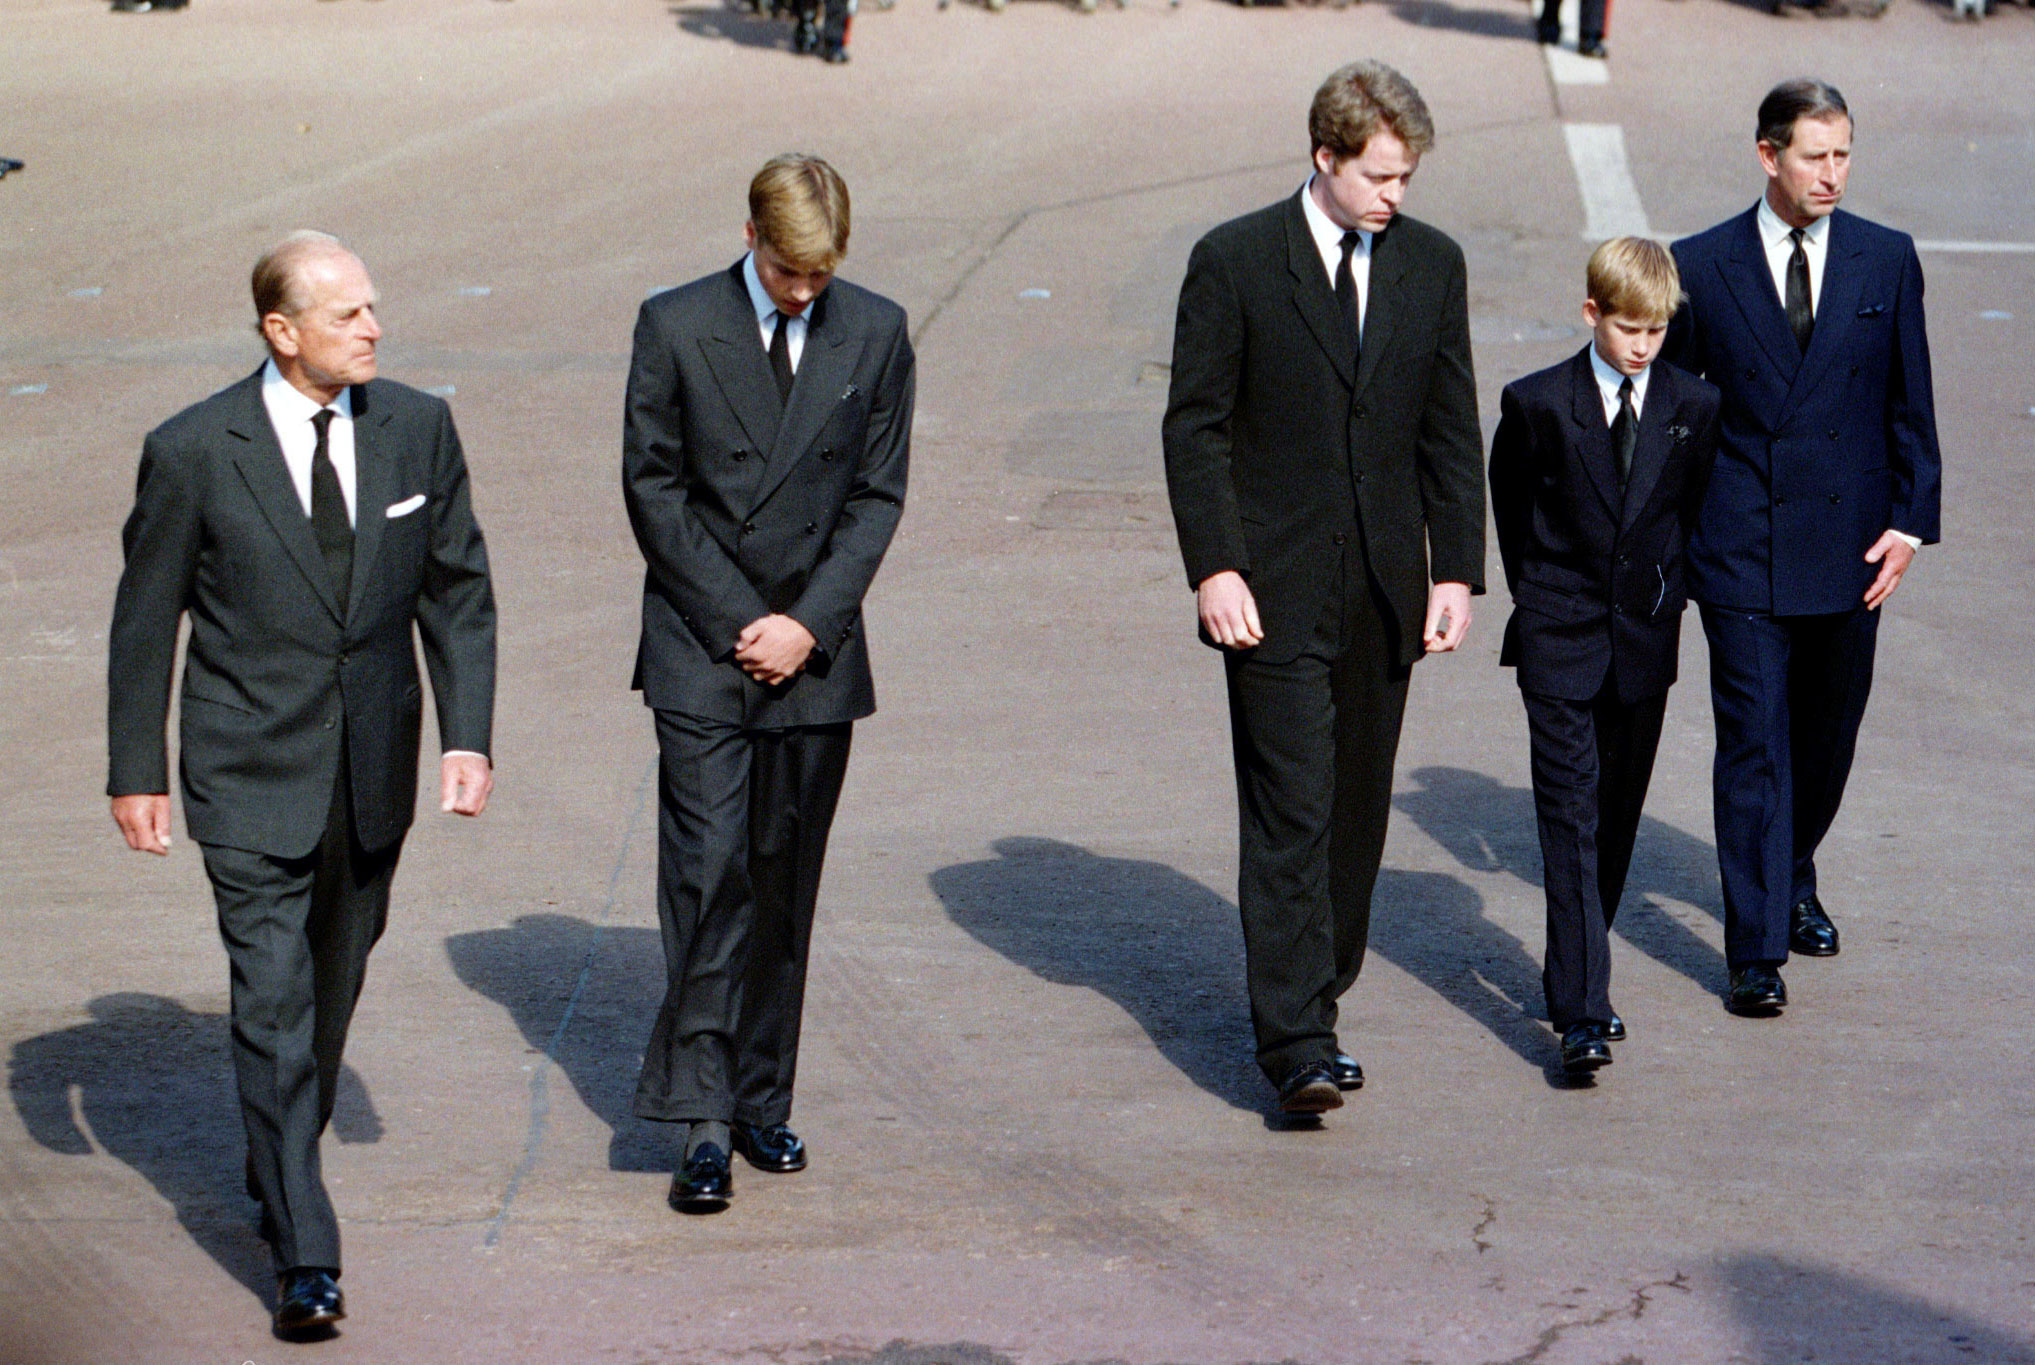 O príncipe Carlos, os filhos William e Harry, o duque de Edimburgo e Earl Spencer caminharam atrás do caixão, no cortejo fúnebre de Diana.